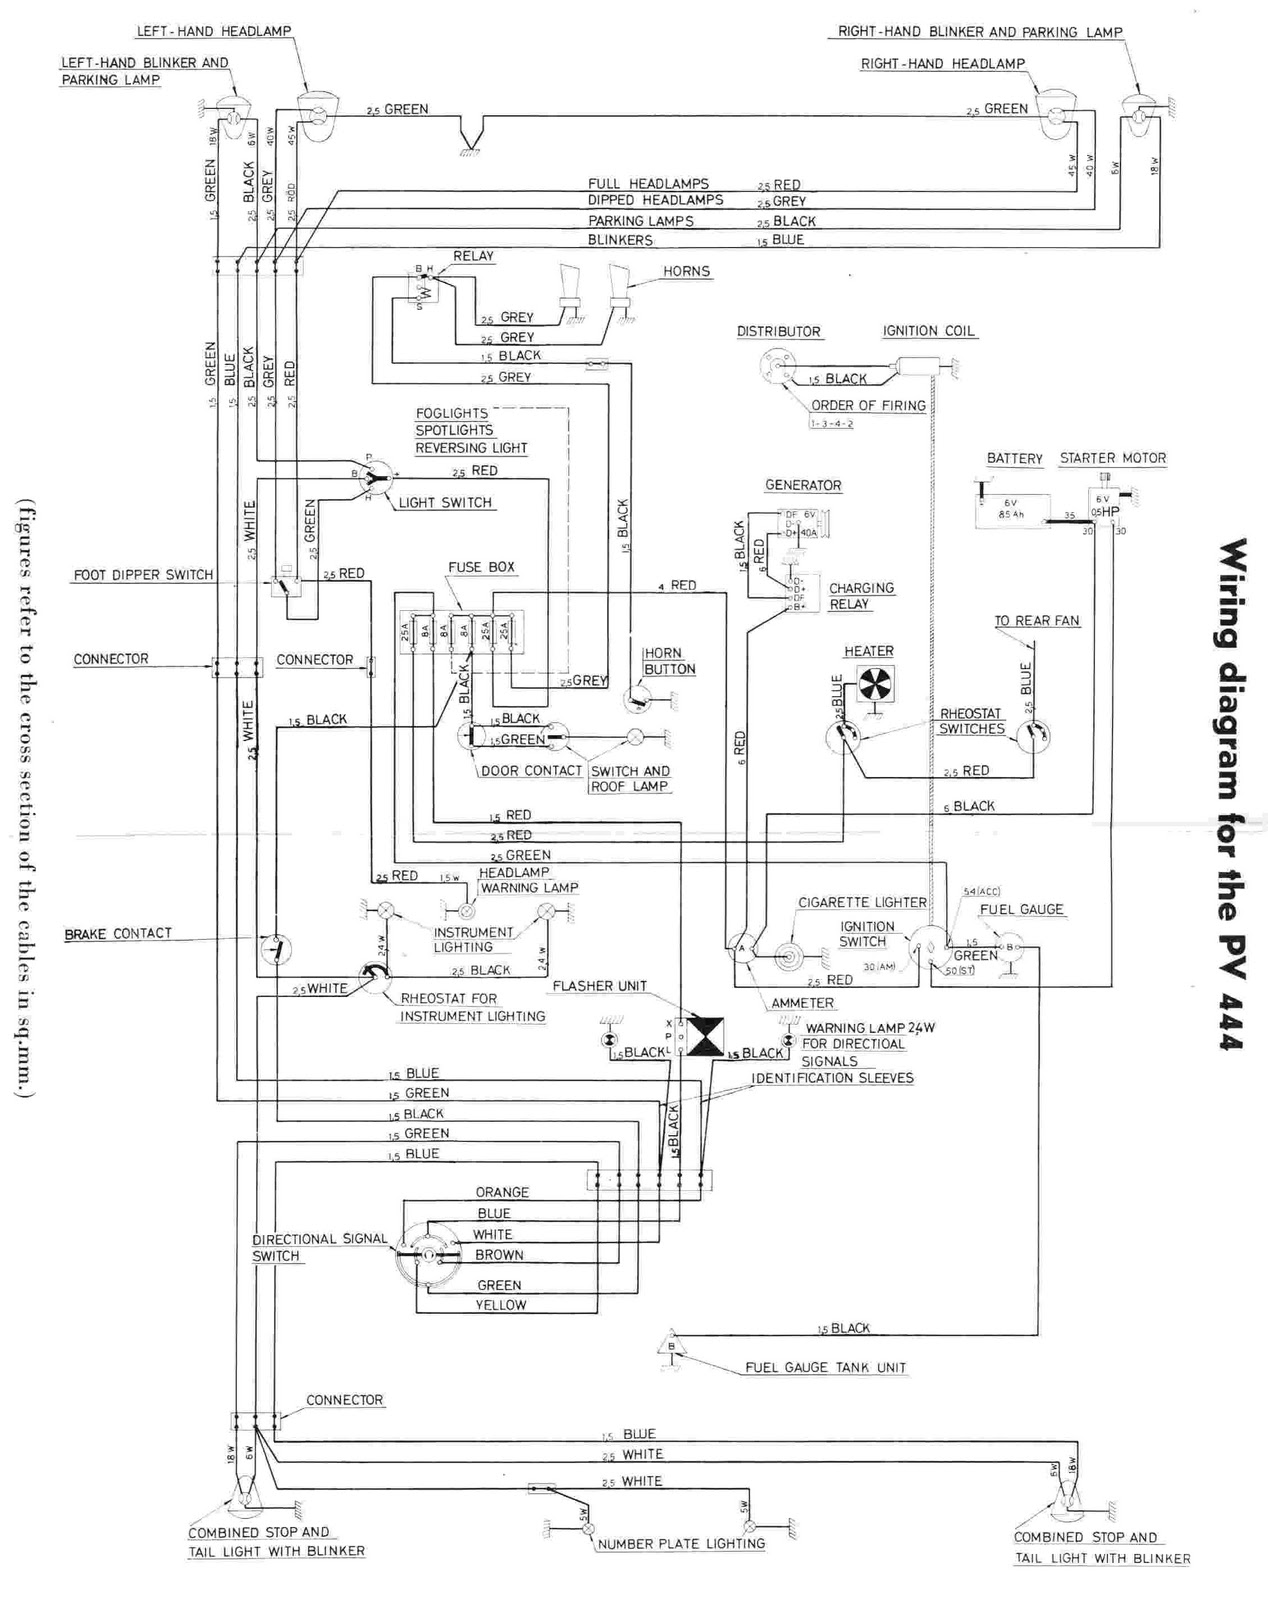 Wiring+Diagram+Of+Volvo+PV444 Volvo Ignition Switch Wiring Diagram on